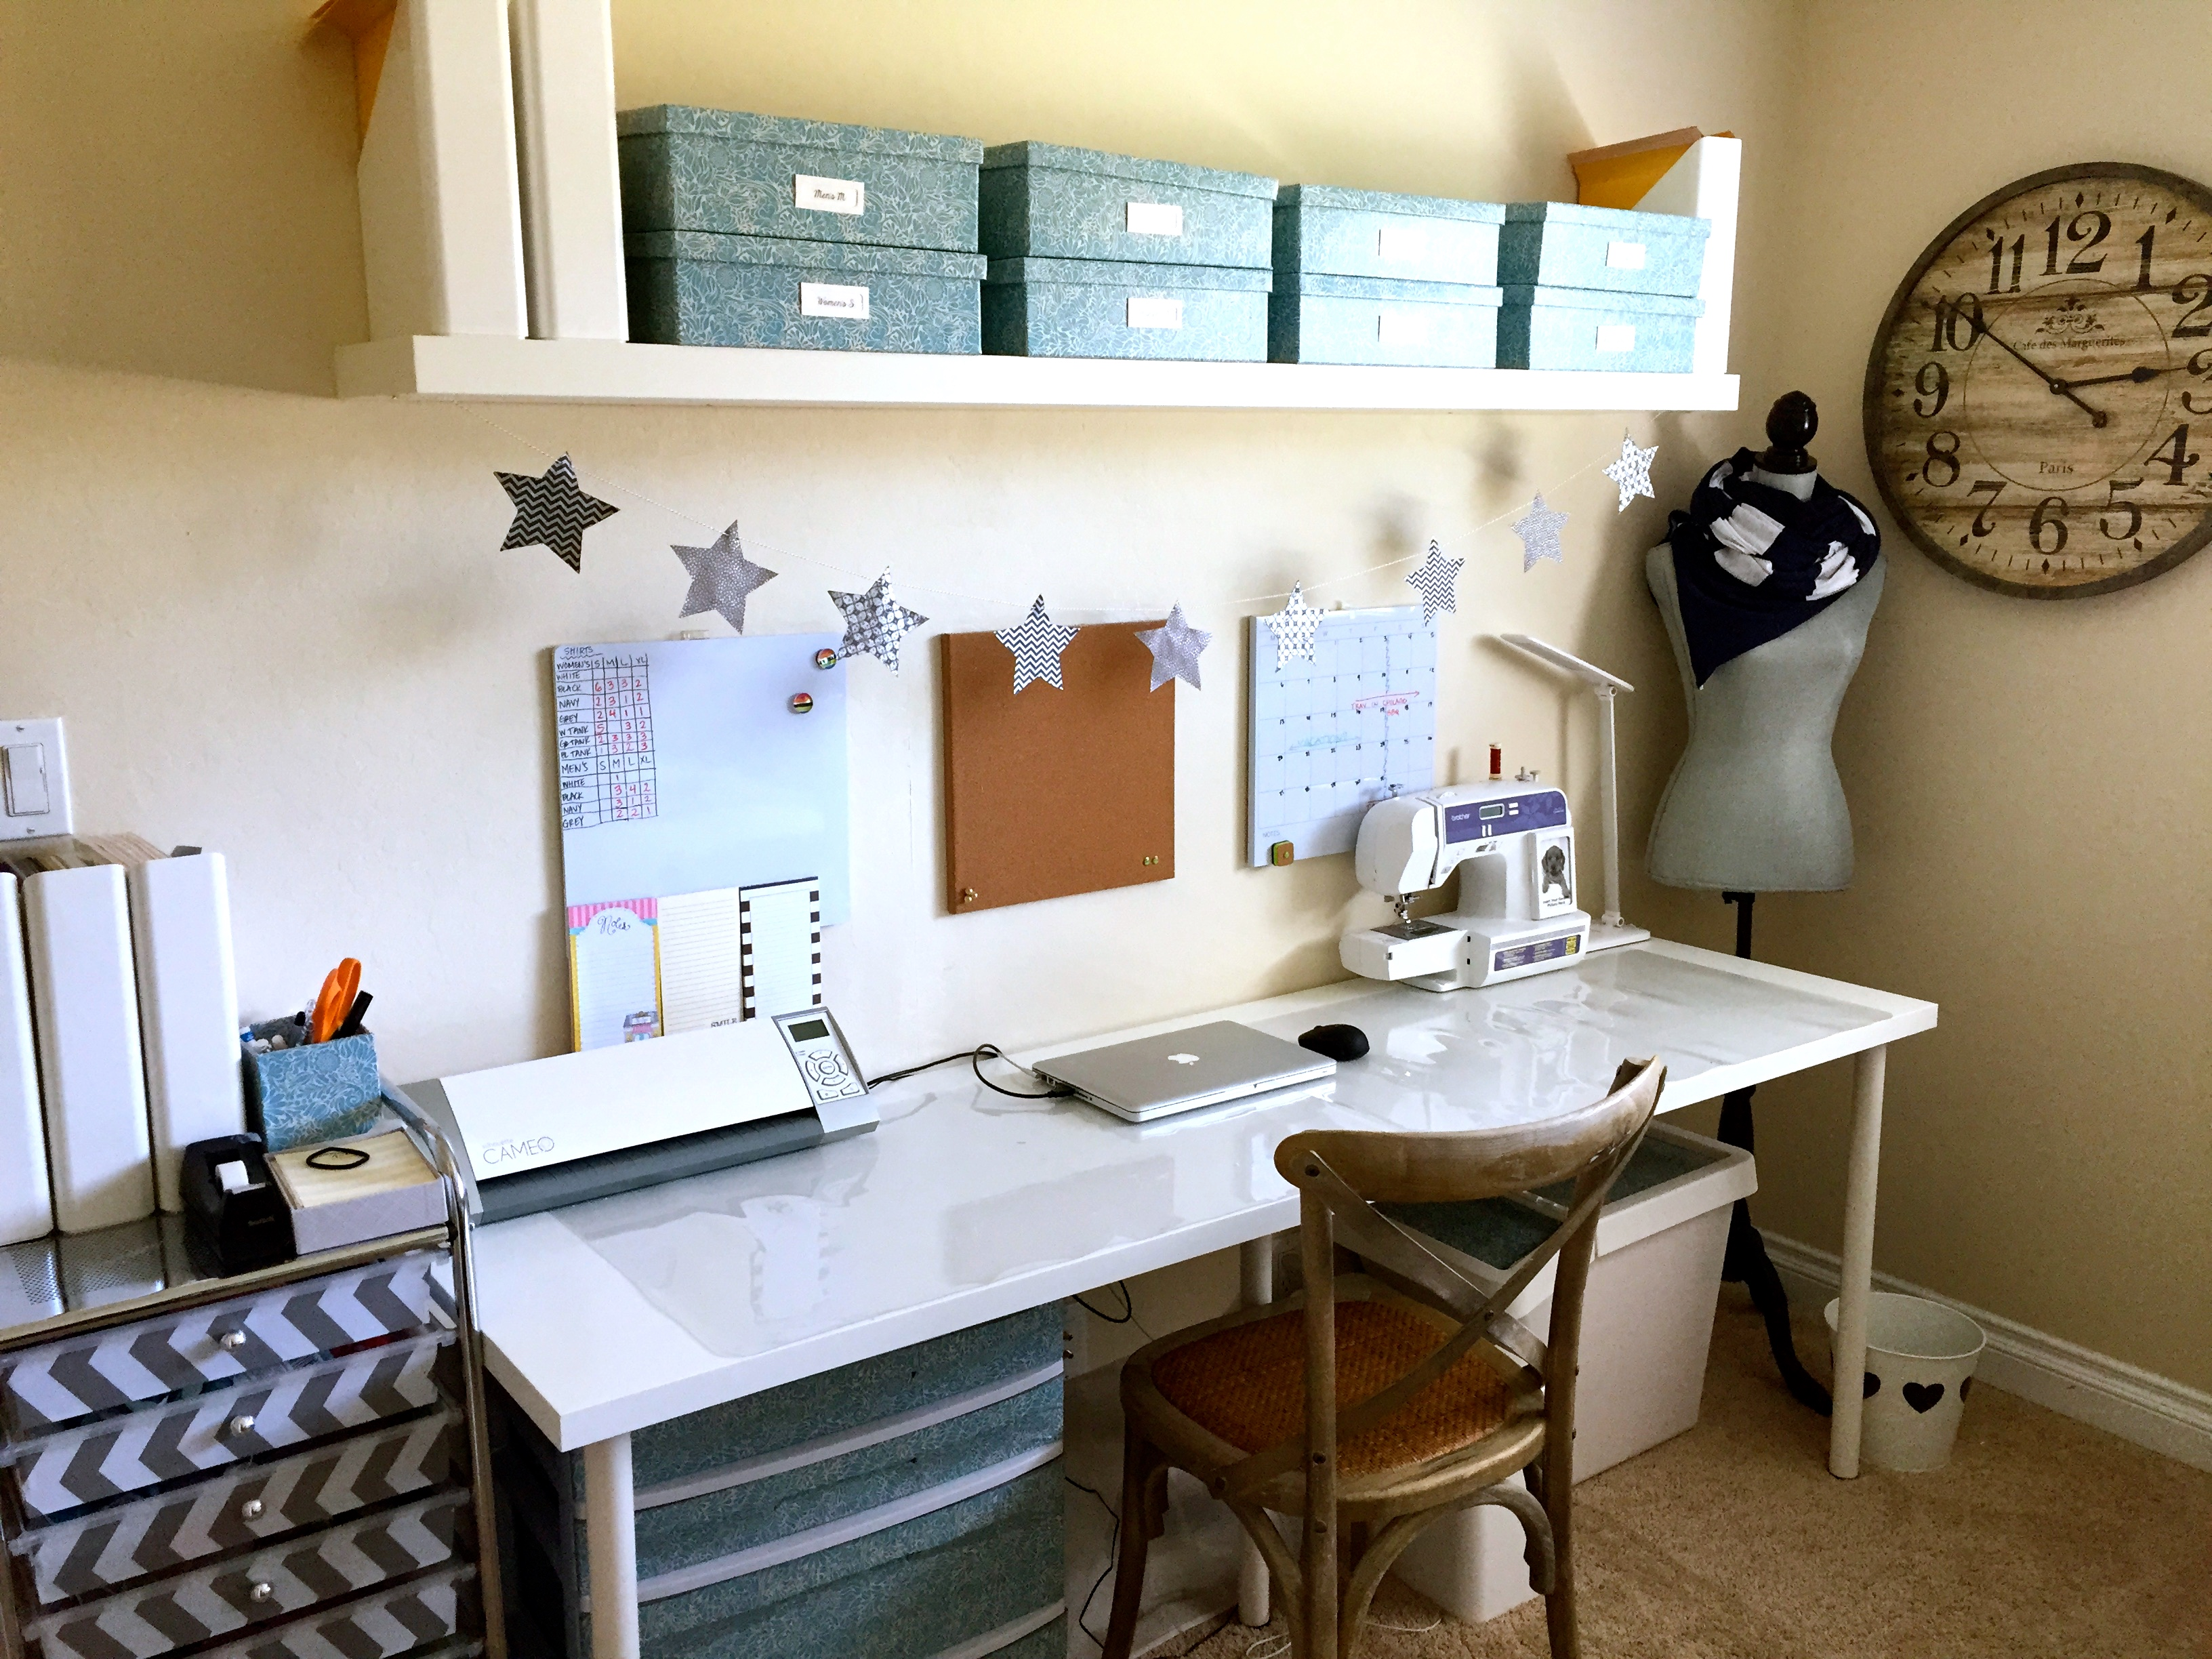 The Ikea Linnmon Desk: A Home Workstation Dream